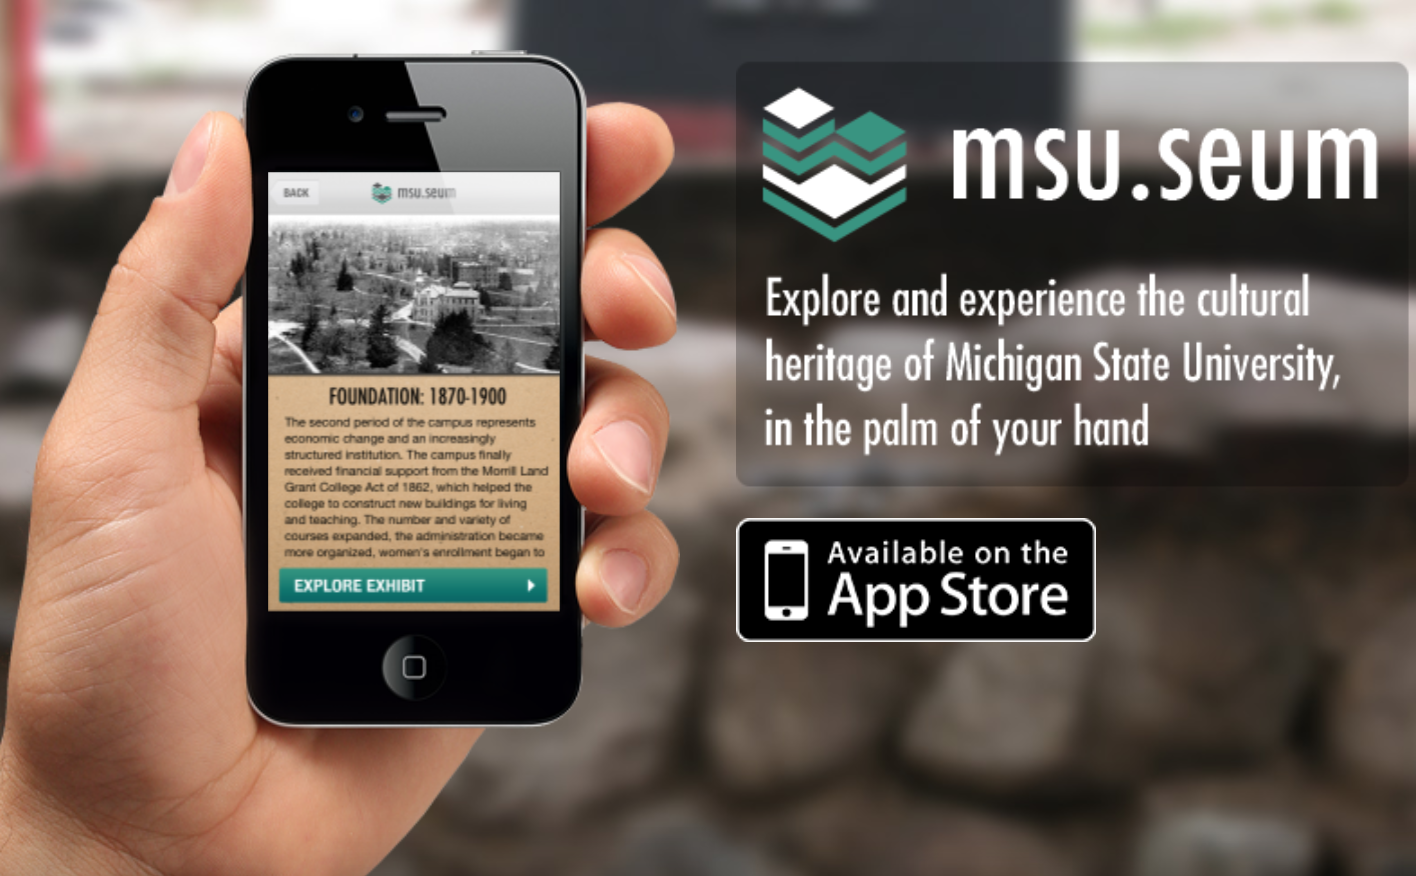 Screenshot of smartphone showing the msu.seum app.